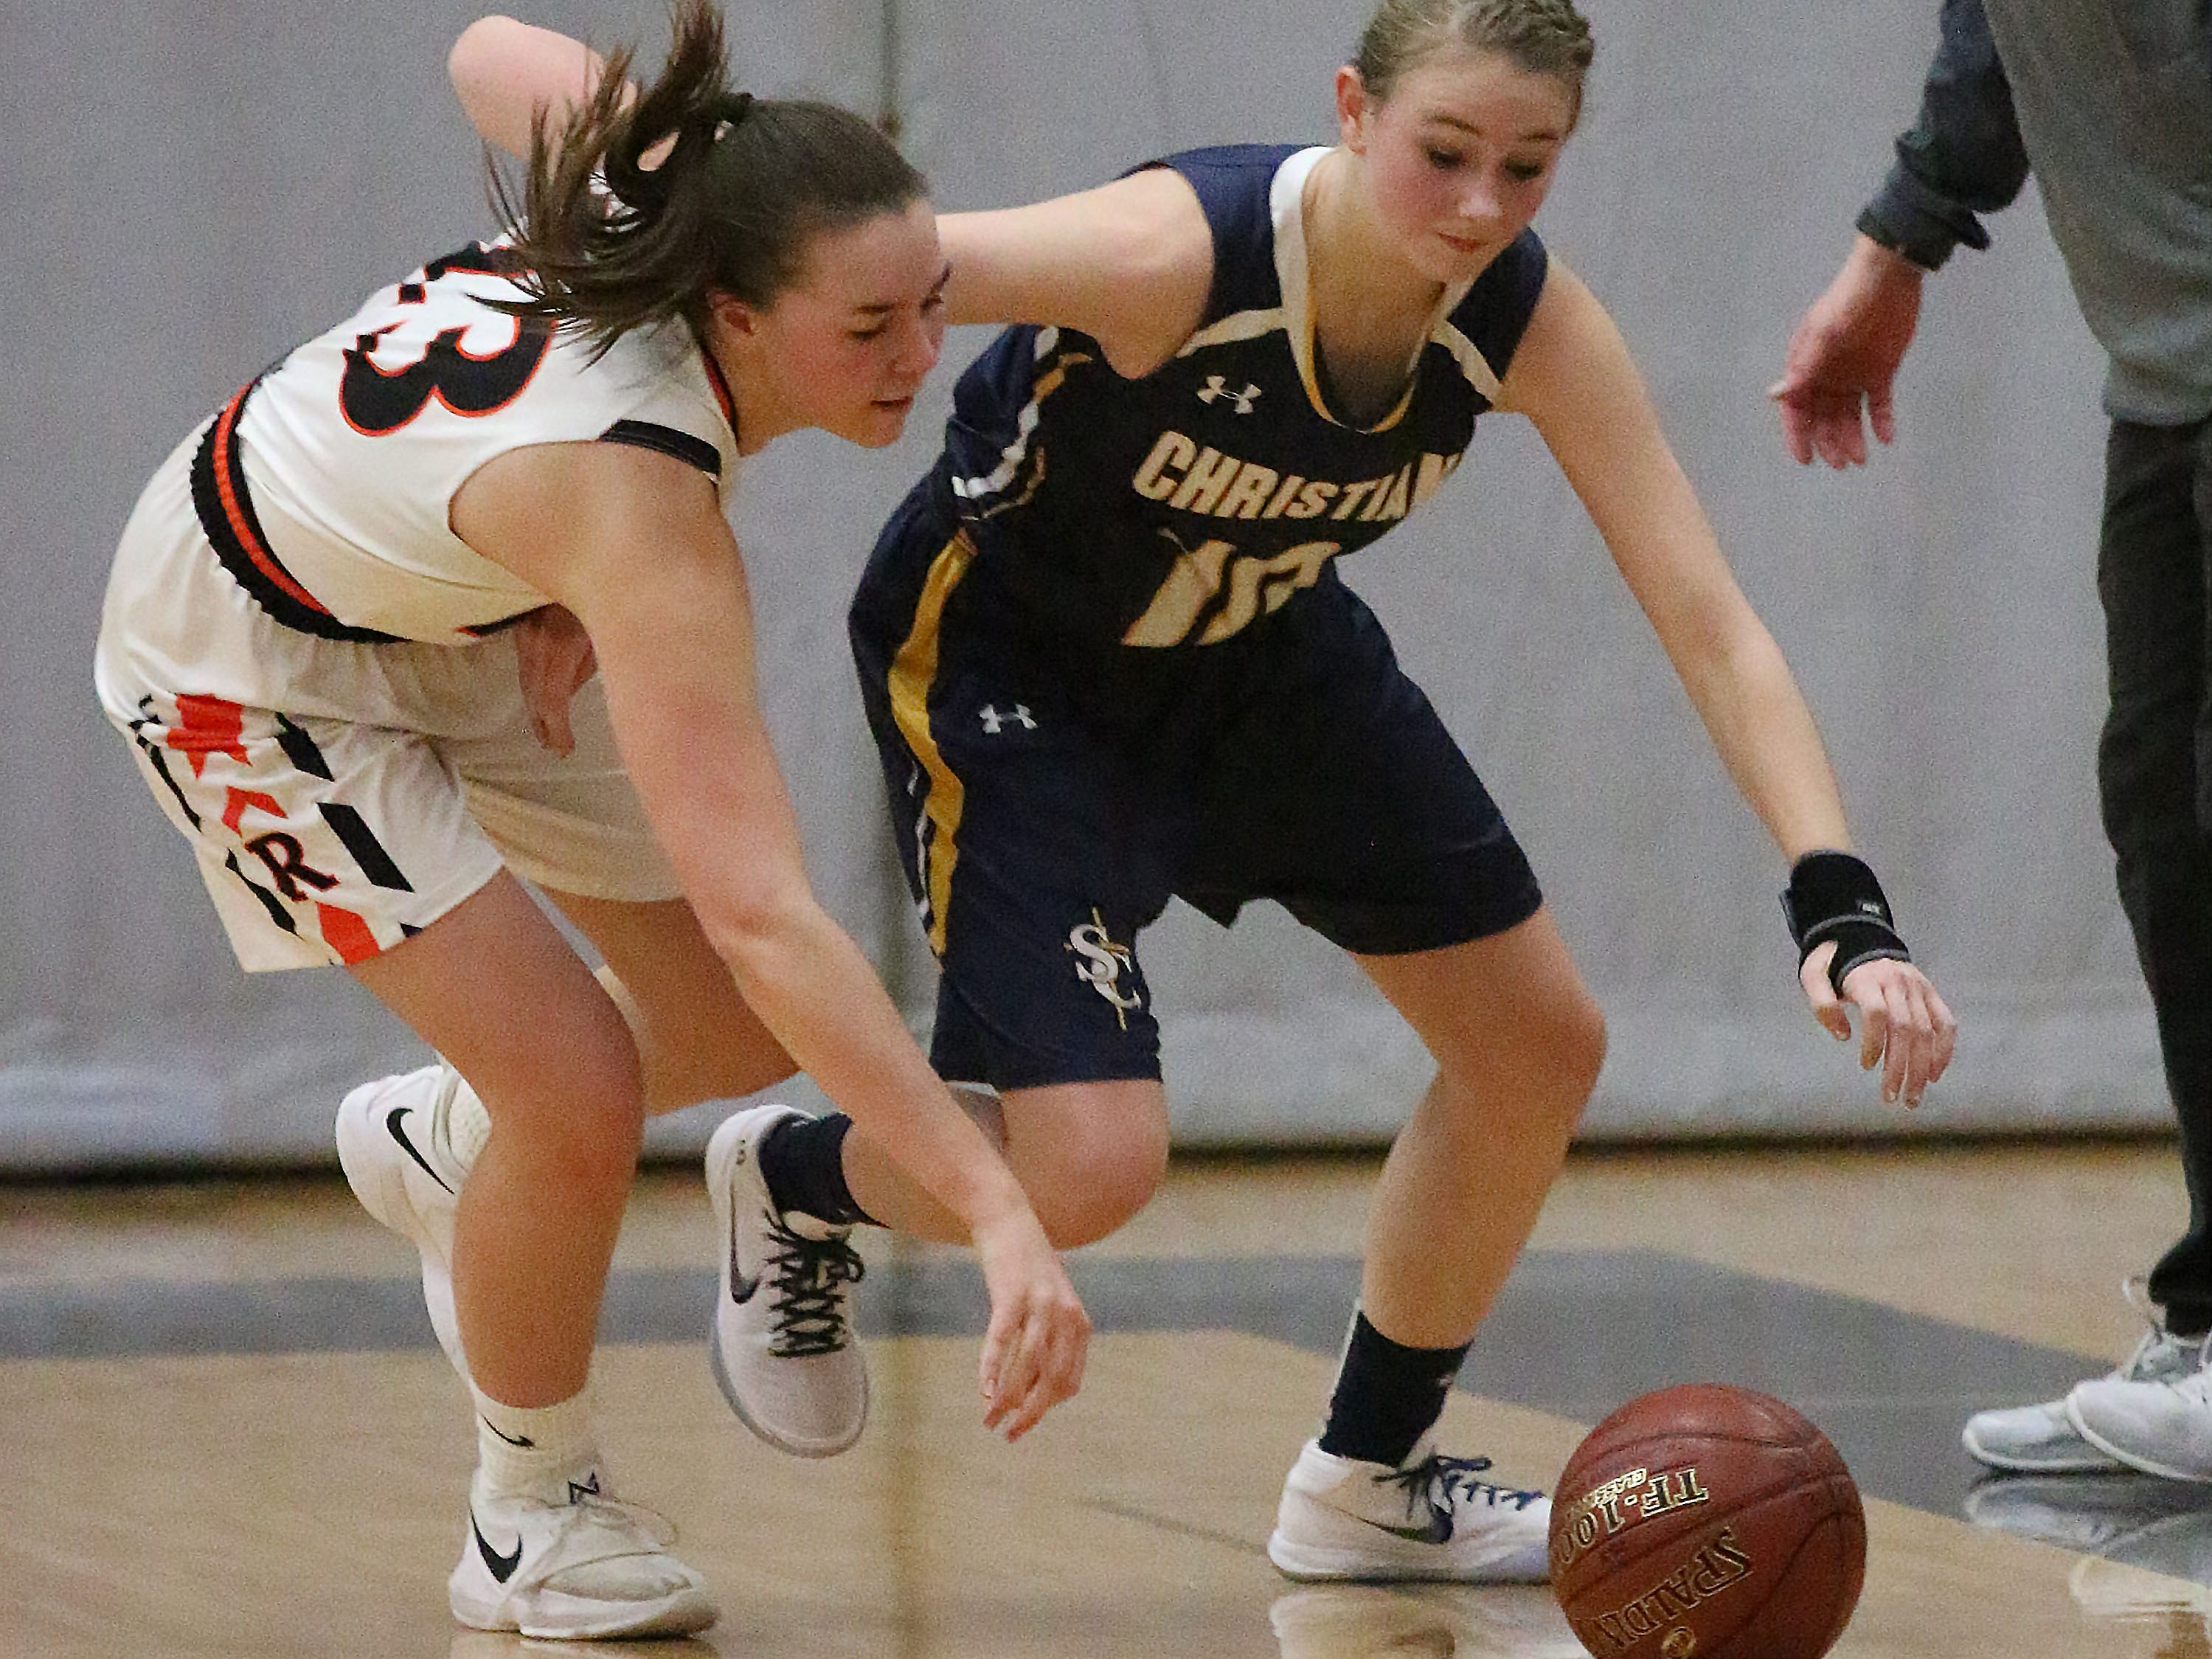 Cedar Grove-Belgium's Maddie Sutryk (23) and Sheboygan Christian's Maddie Zylstra (10) rush to the ball, Tuesday, December 4, 2018, in Cedar Grove, Wis.